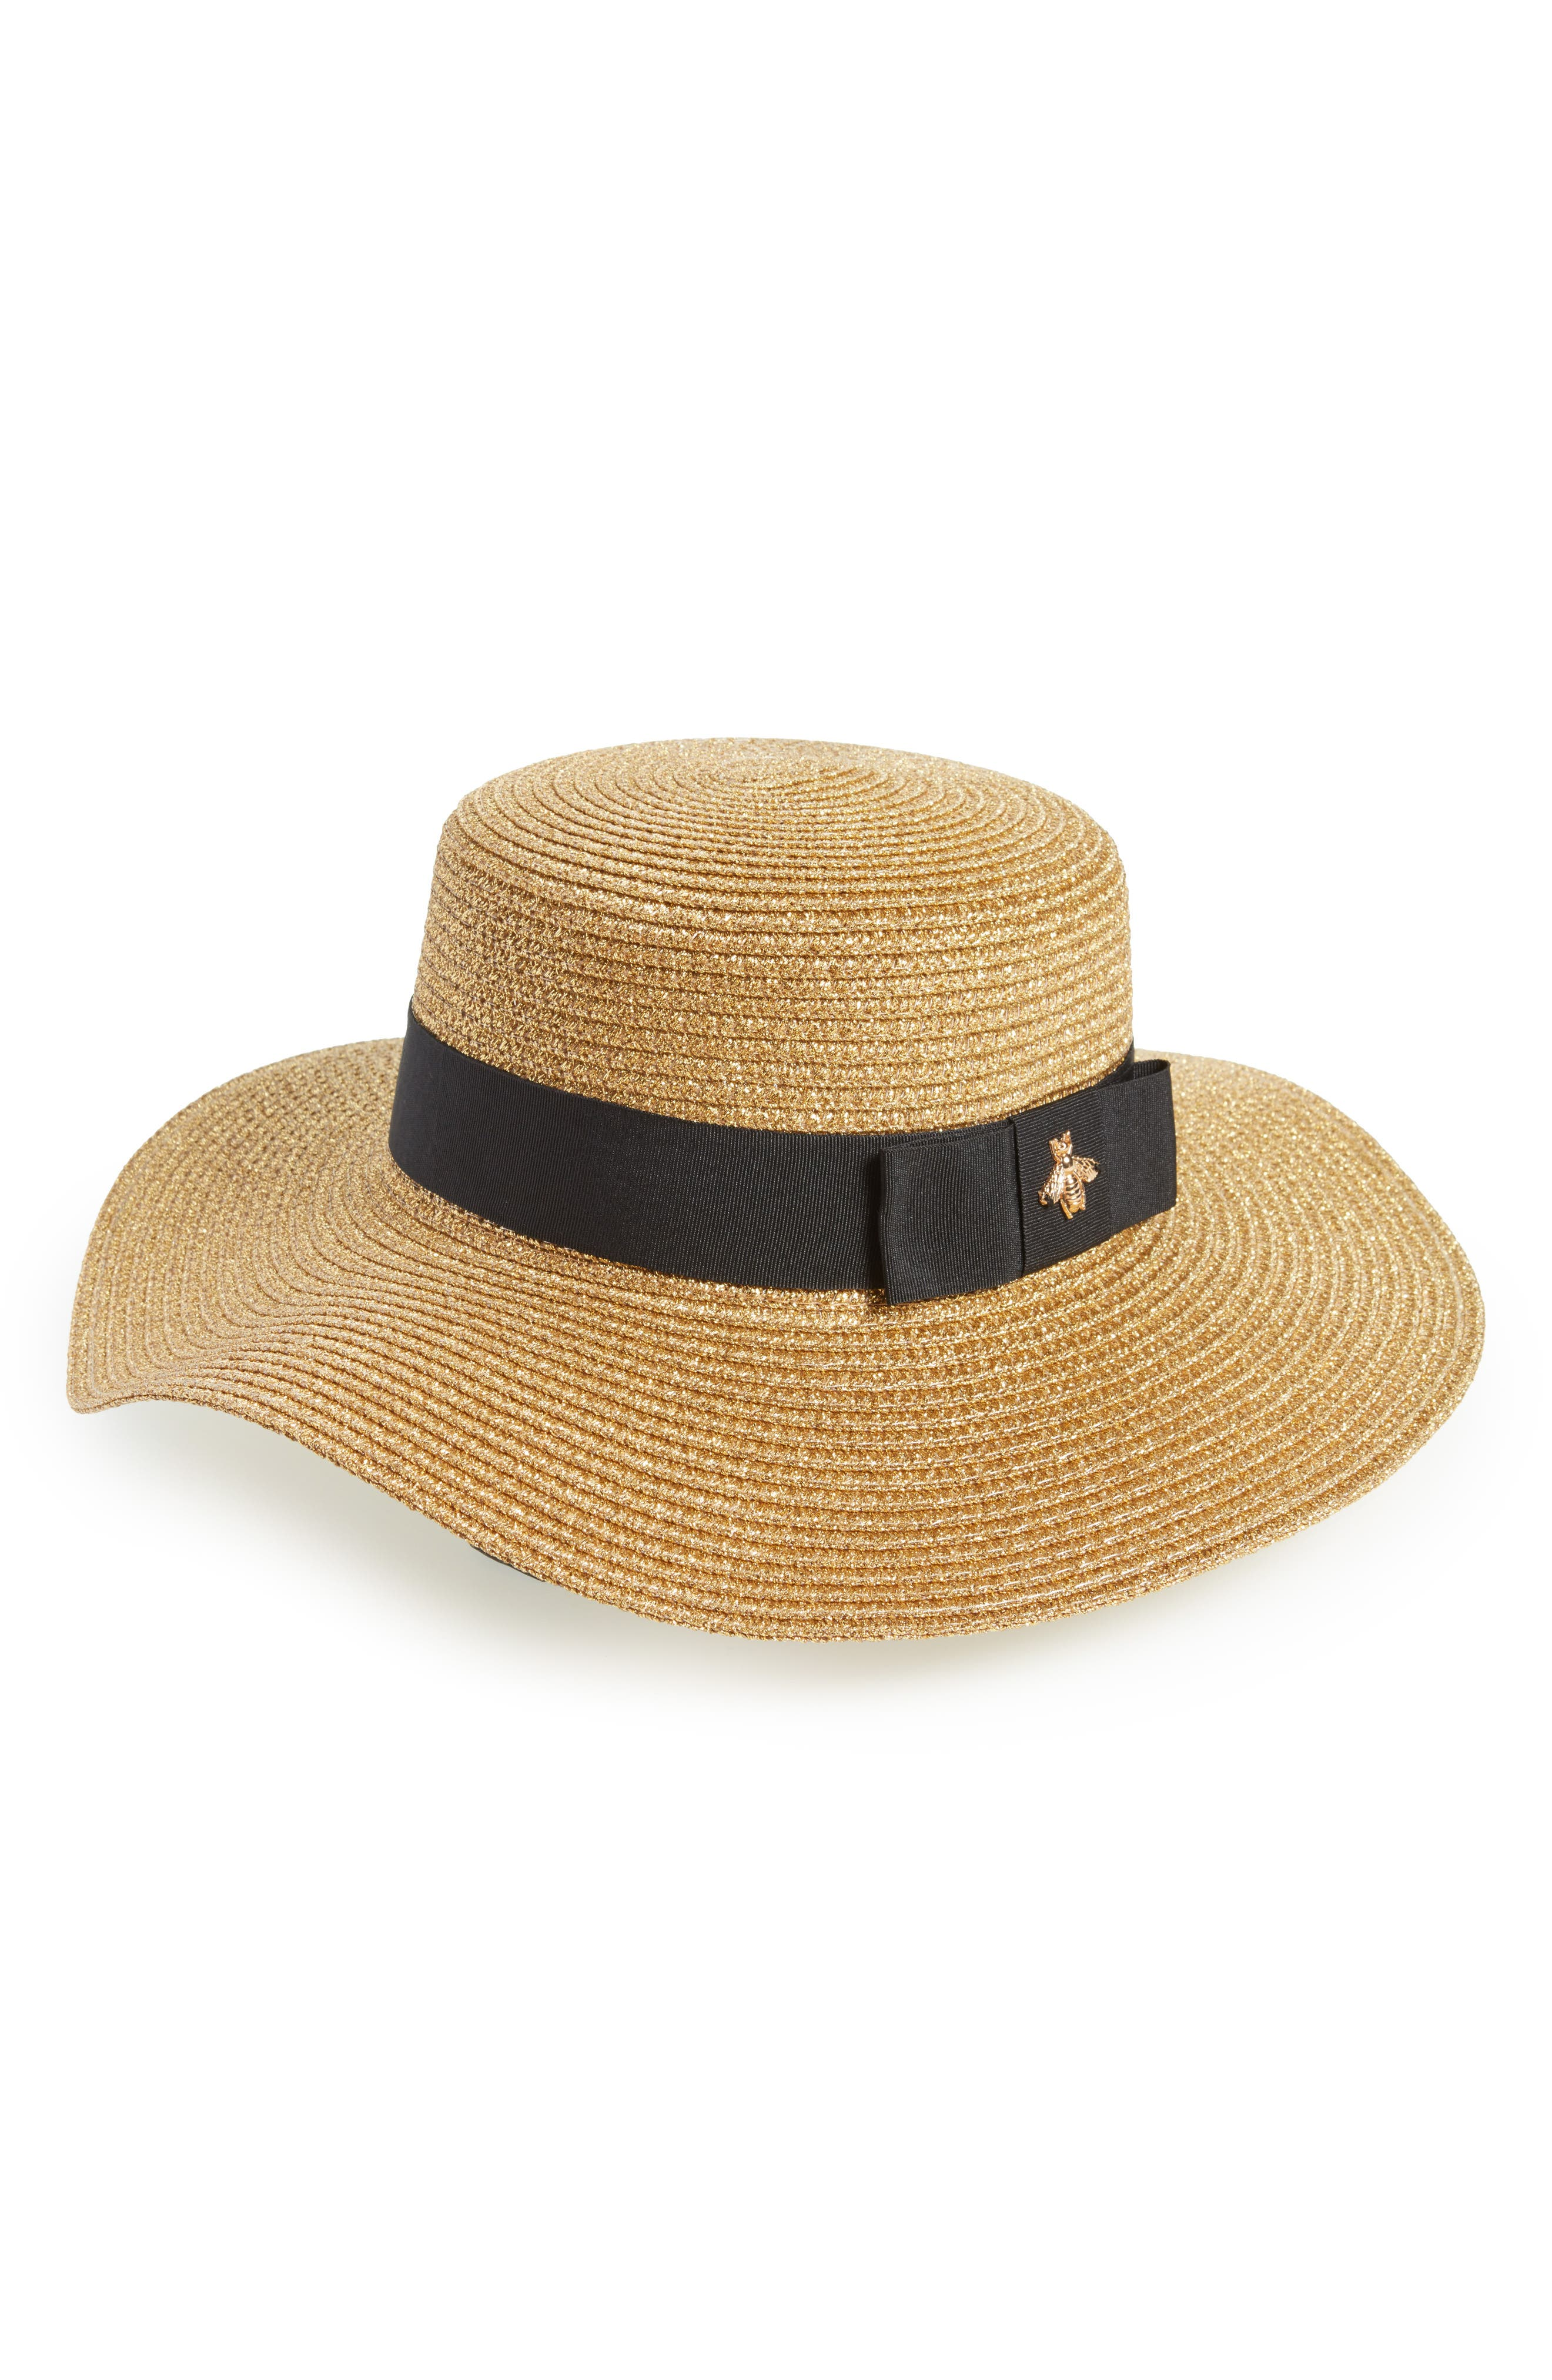 Glitter Bee Boater Hat,                             Main thumbnail 1, color,                             Natural/ Black